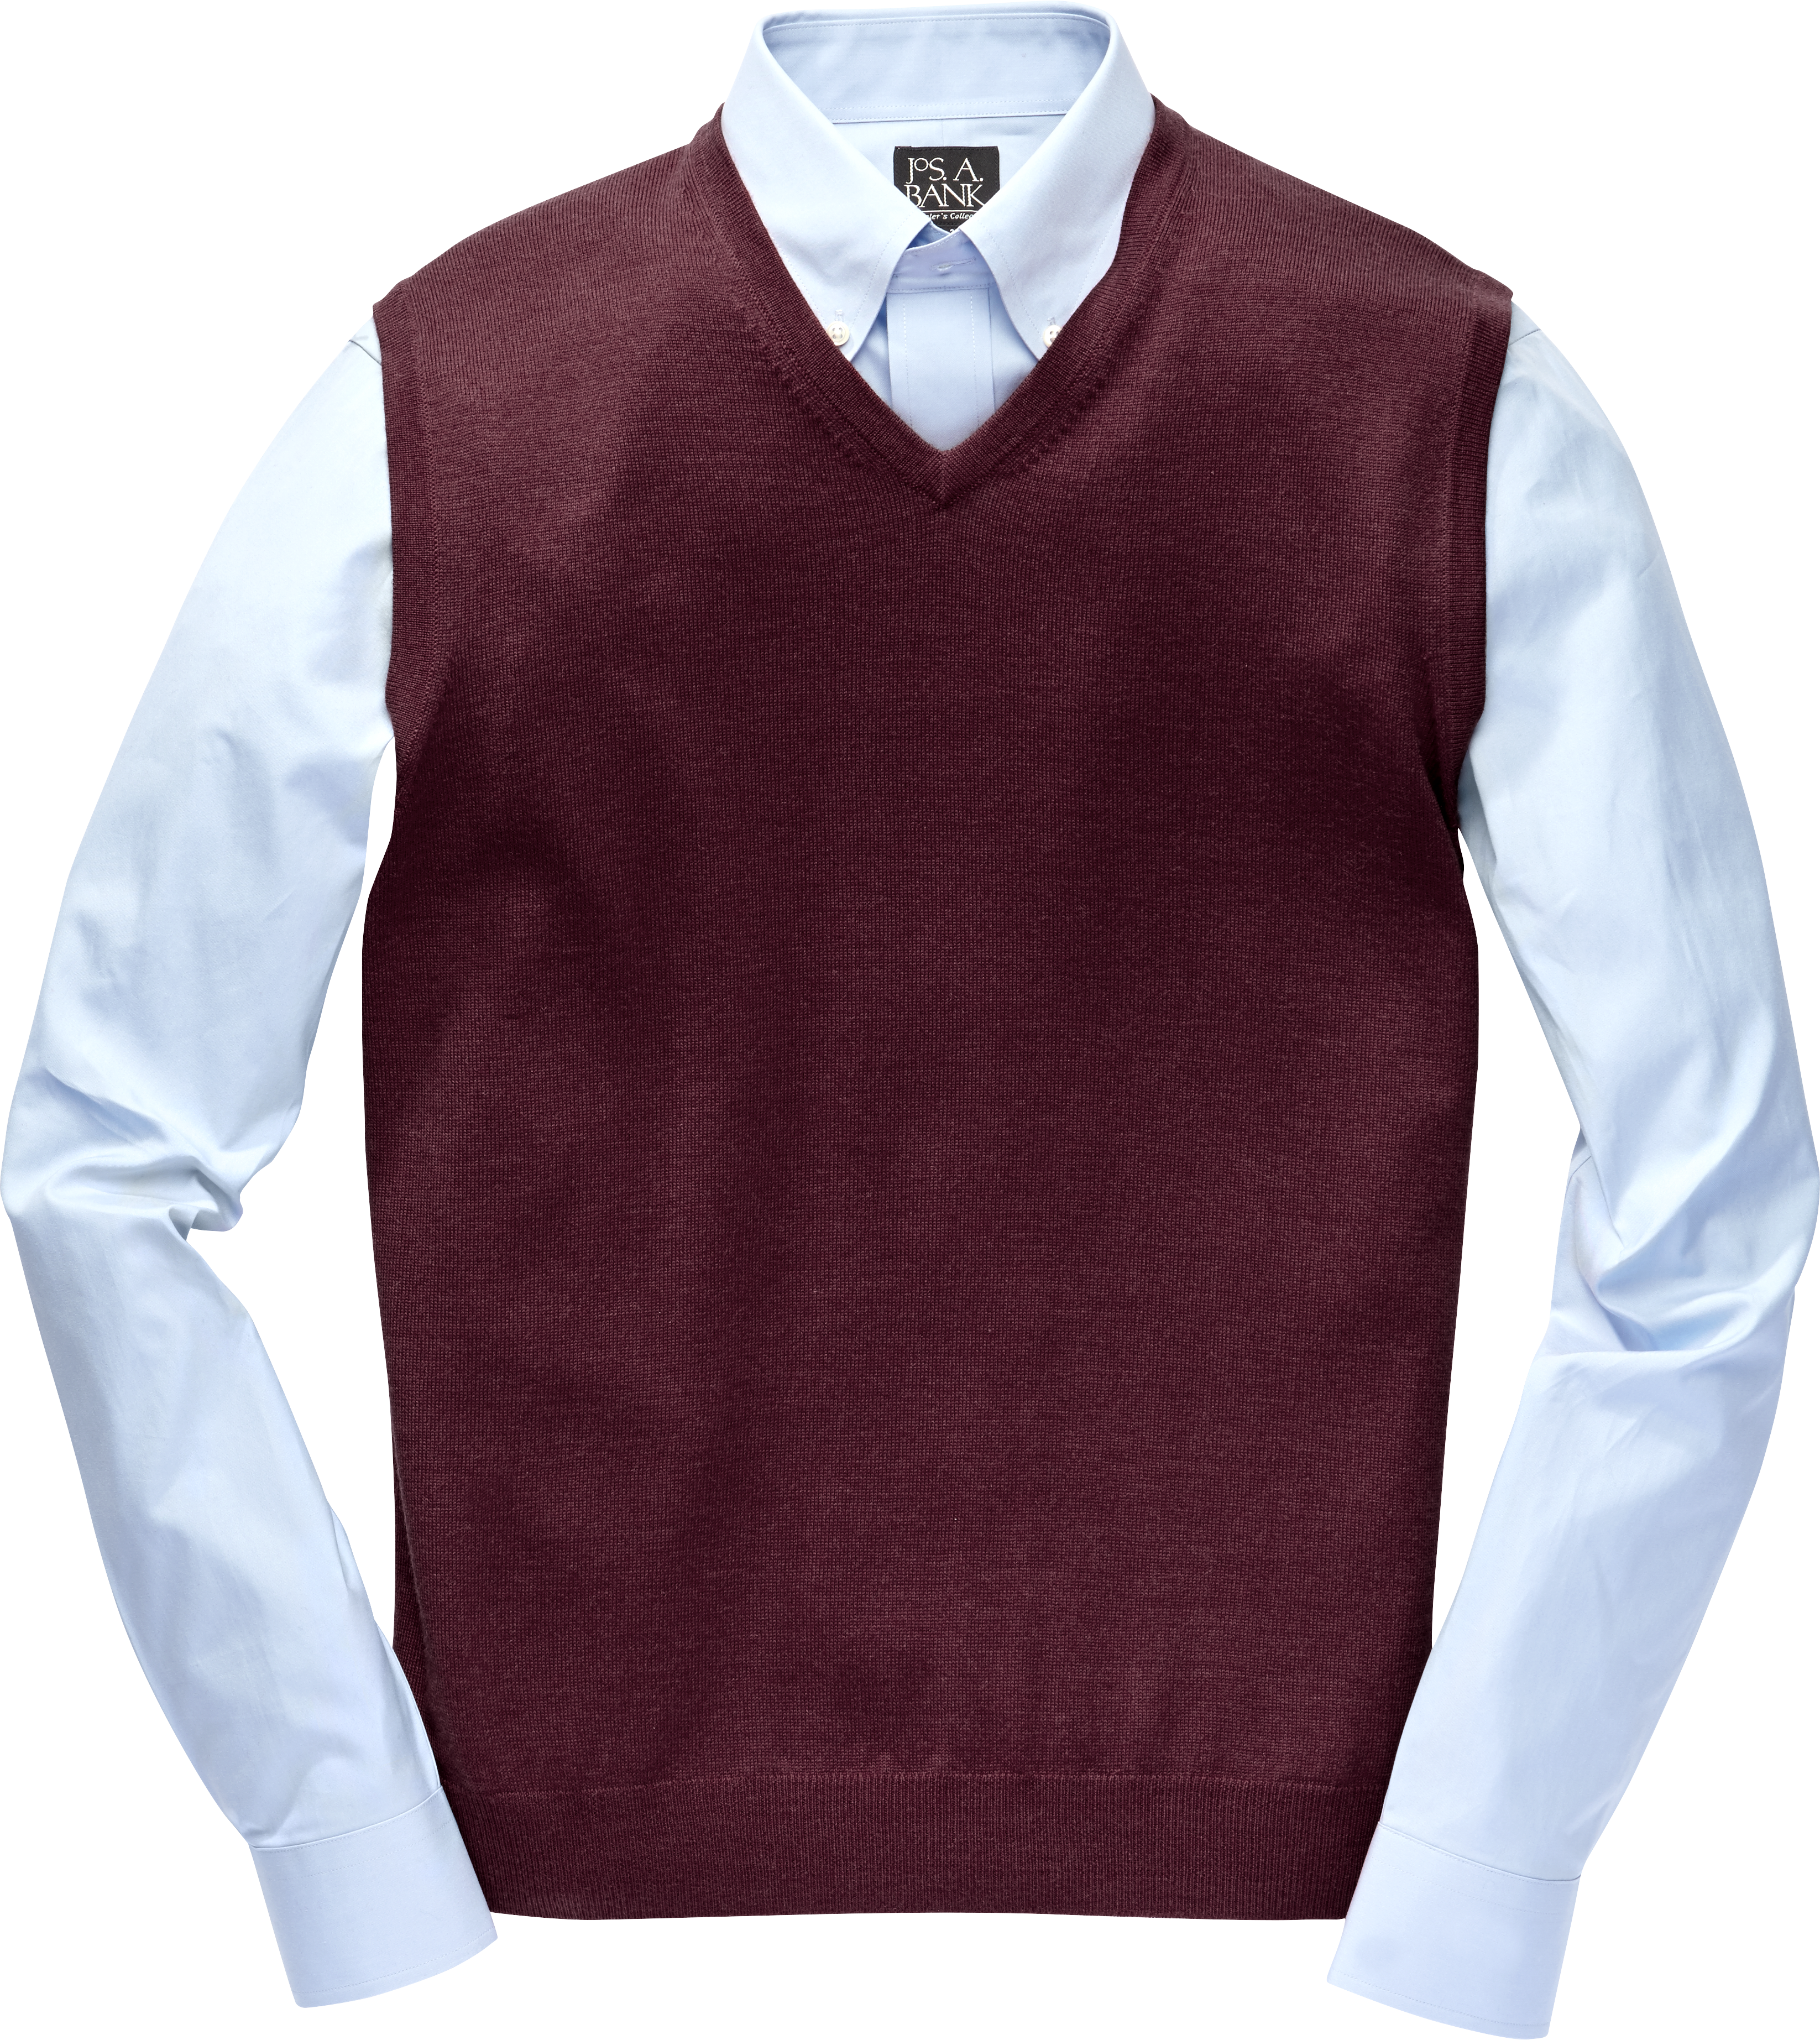 b1fac0d0d8 Traveler Collection Washable Merino Wool Sweater Vest CLEARANCE  6F6G